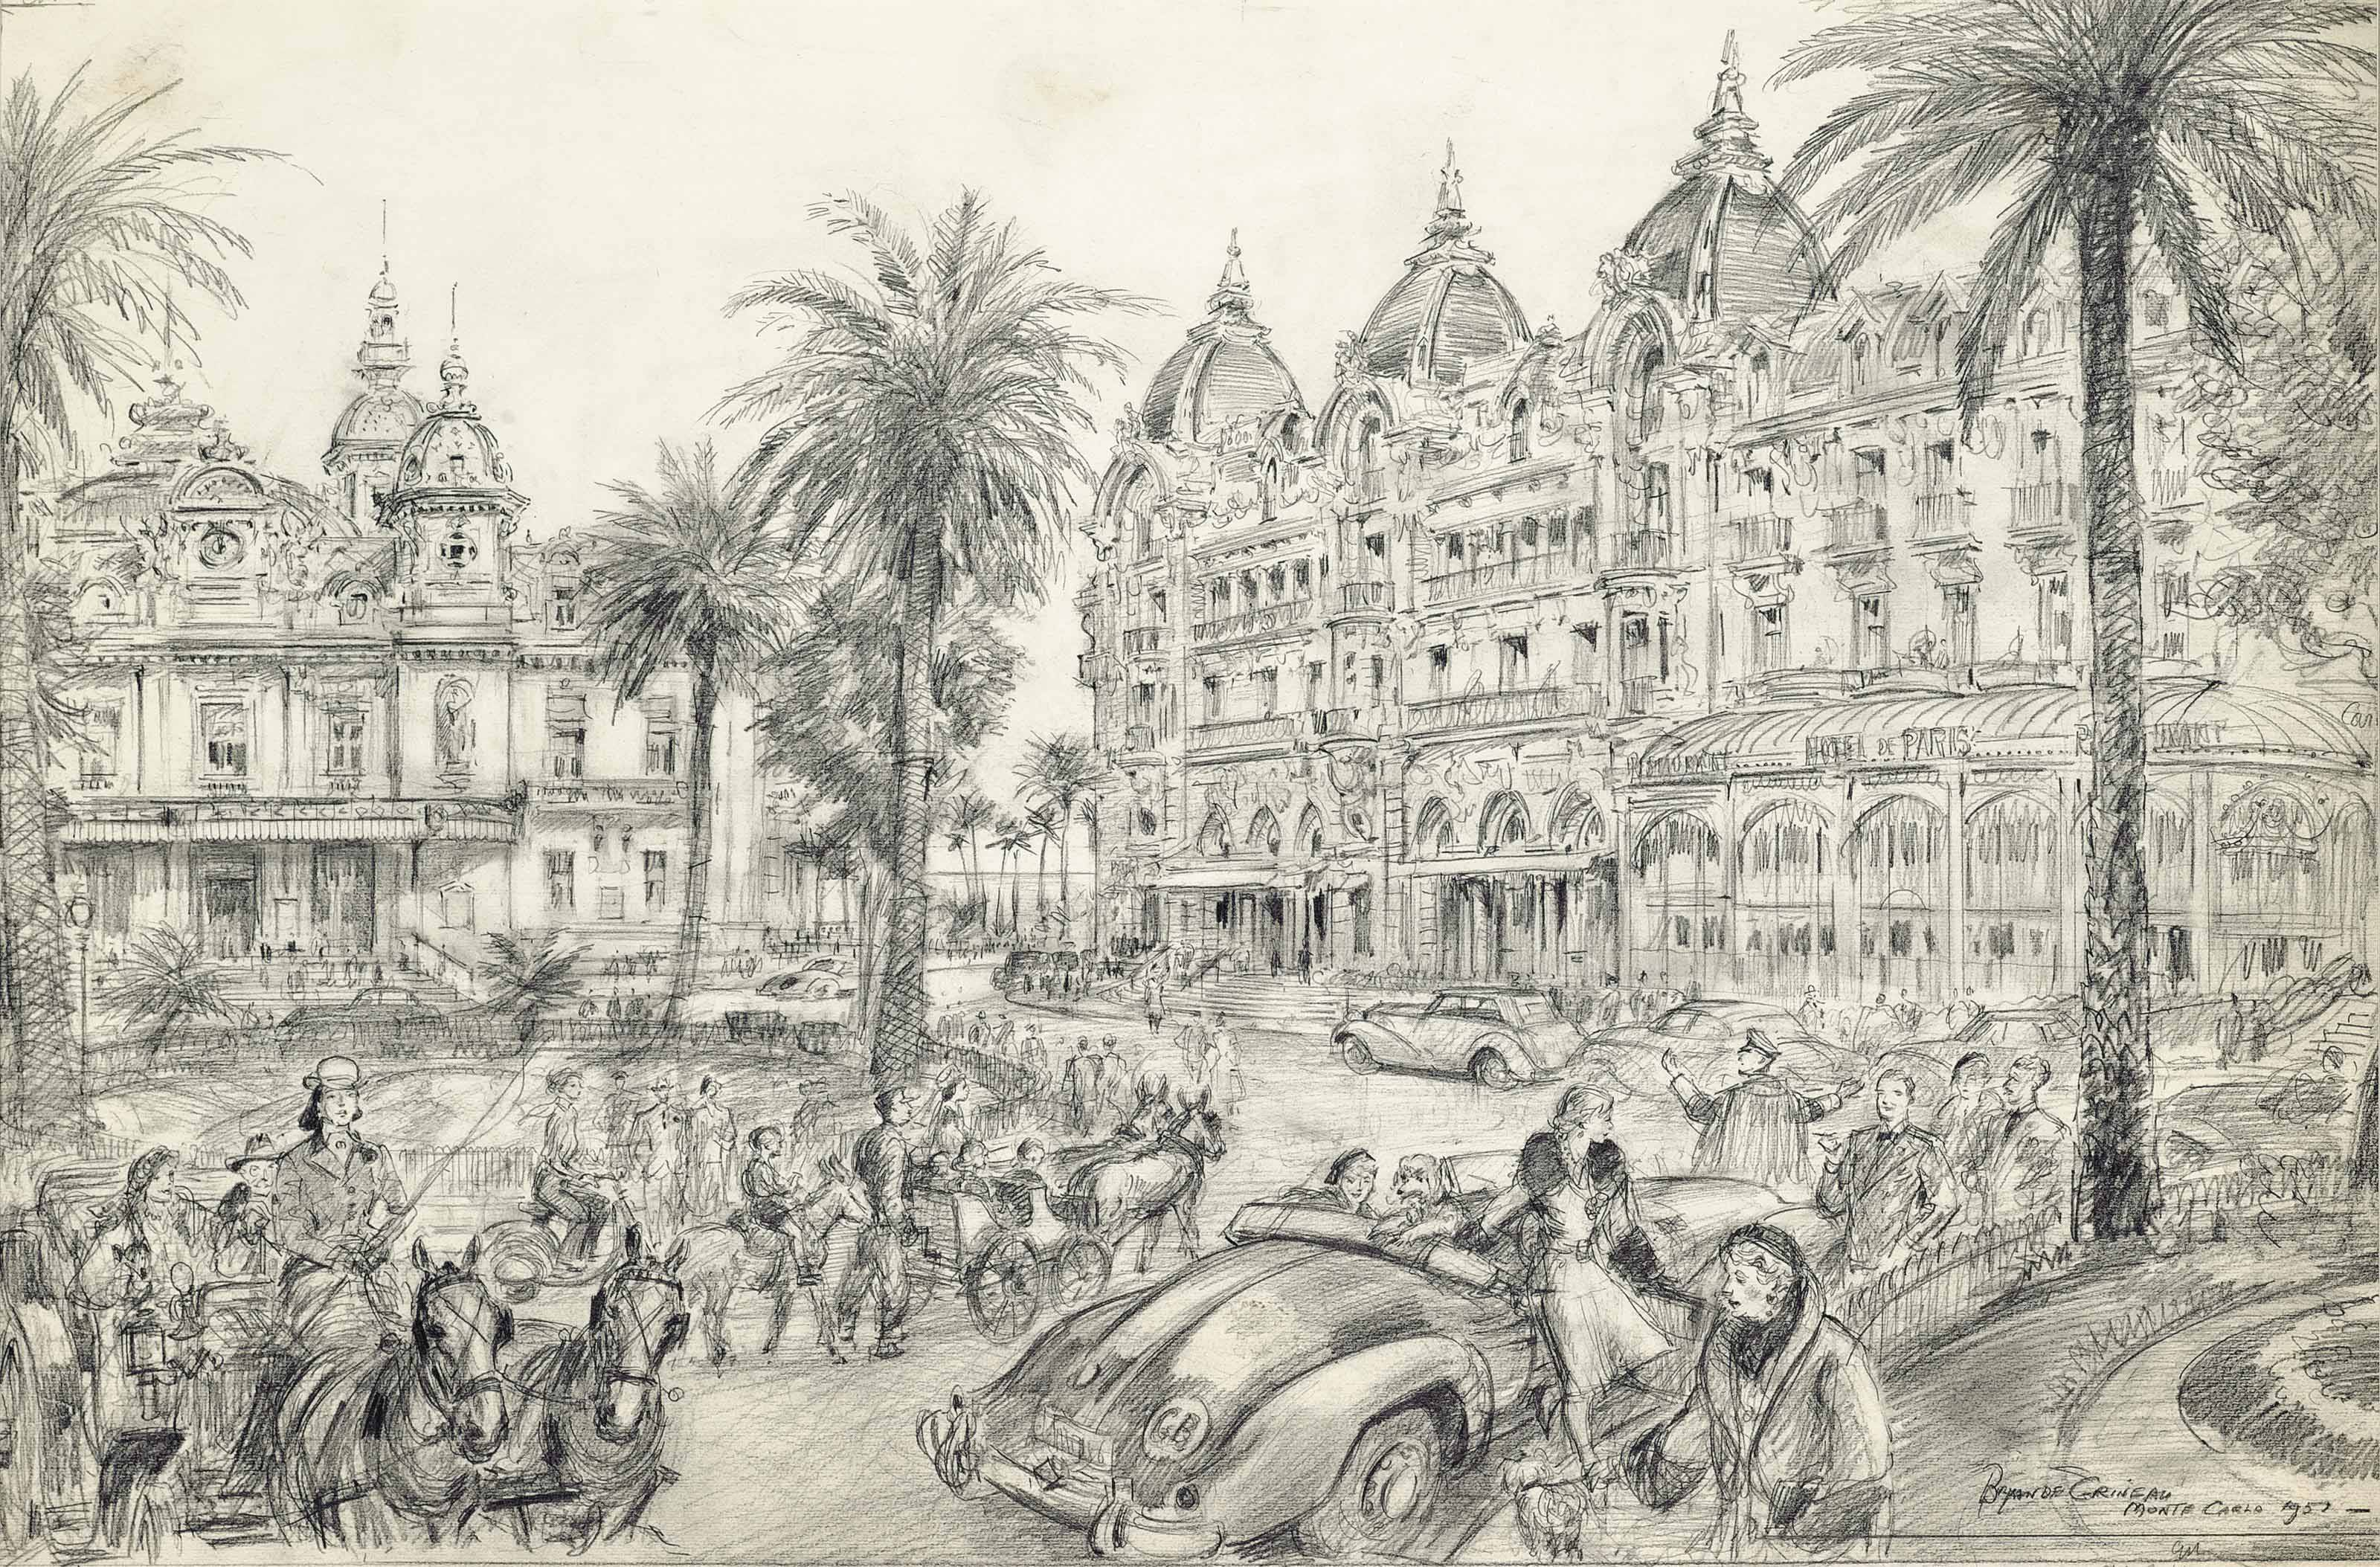 A famous spot on the Riviera which still retains its traditionally carefree atmosphere of leisure and elegance: The square outside the Casino at Monte Carlo